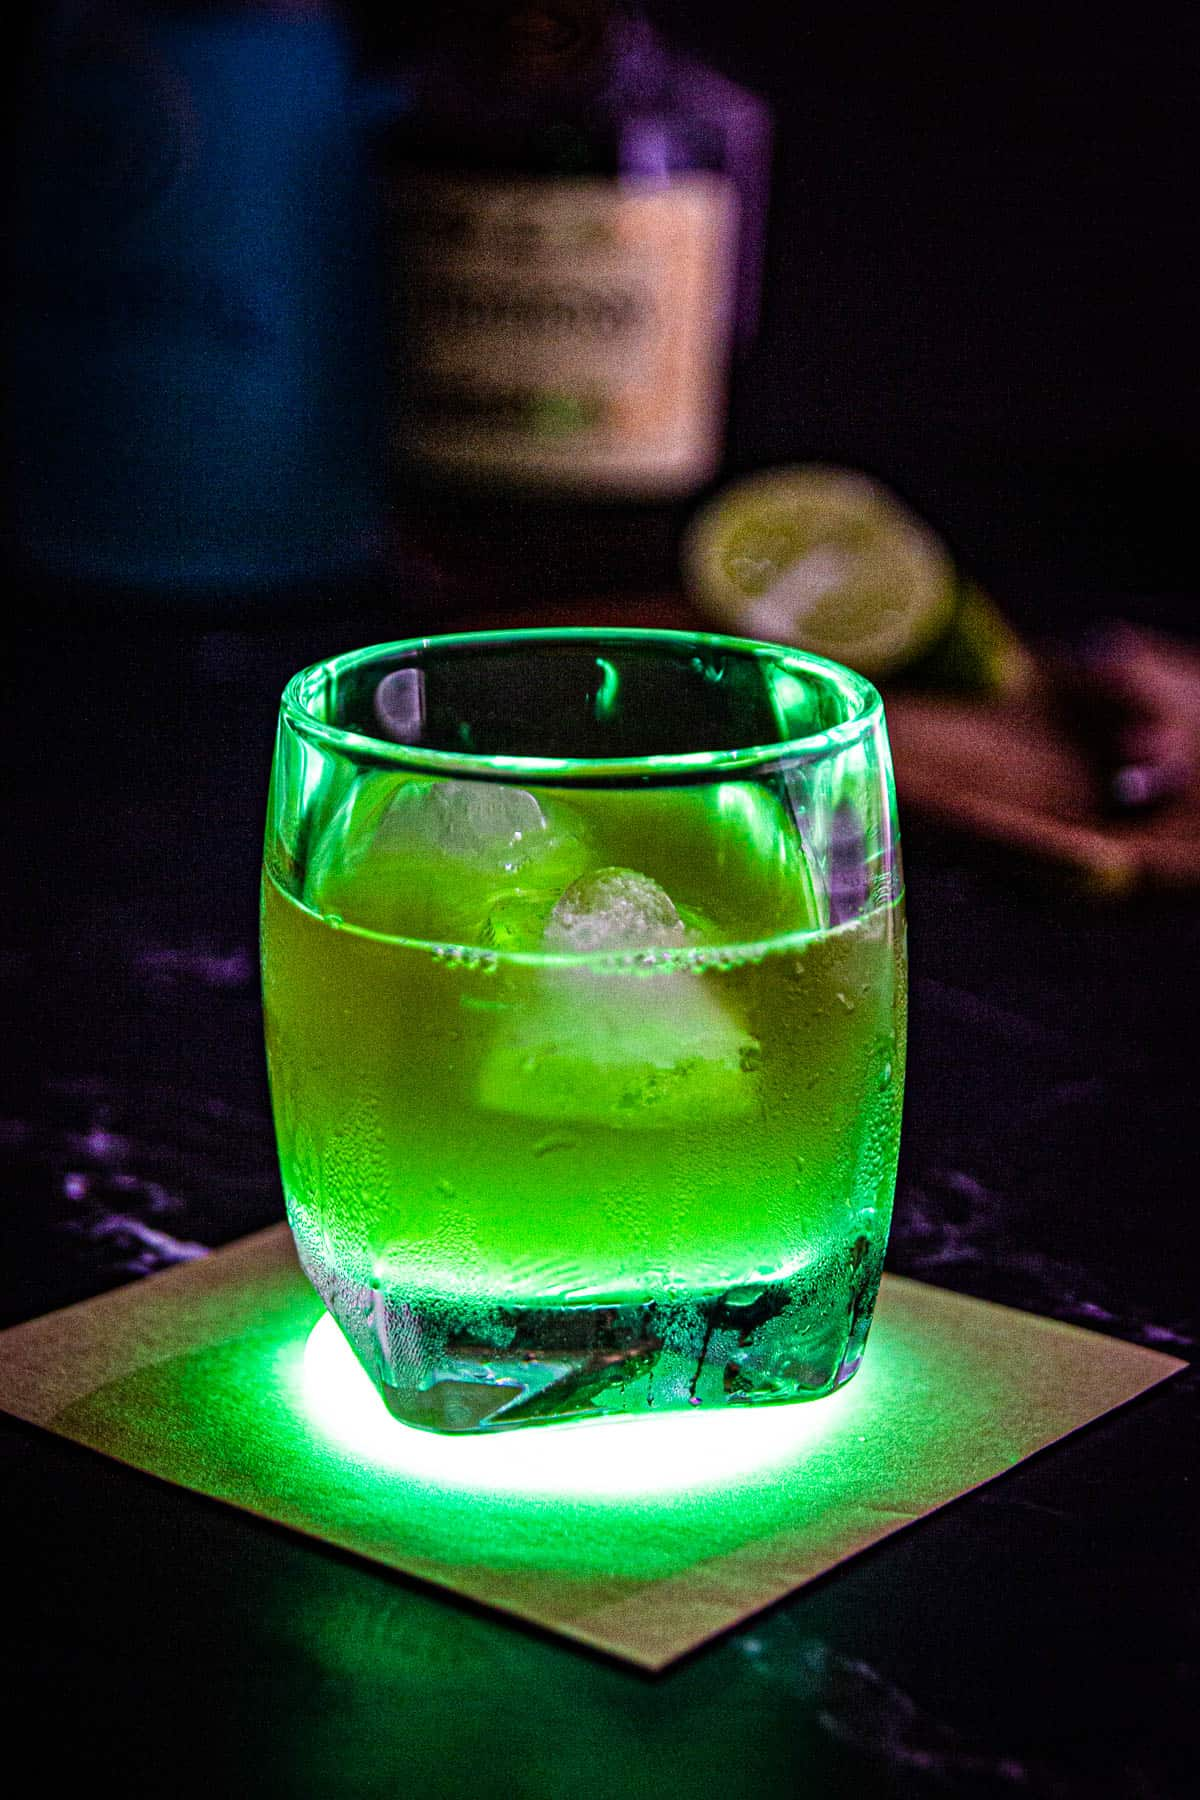 A glowing green incredible hulk drink cocktail.